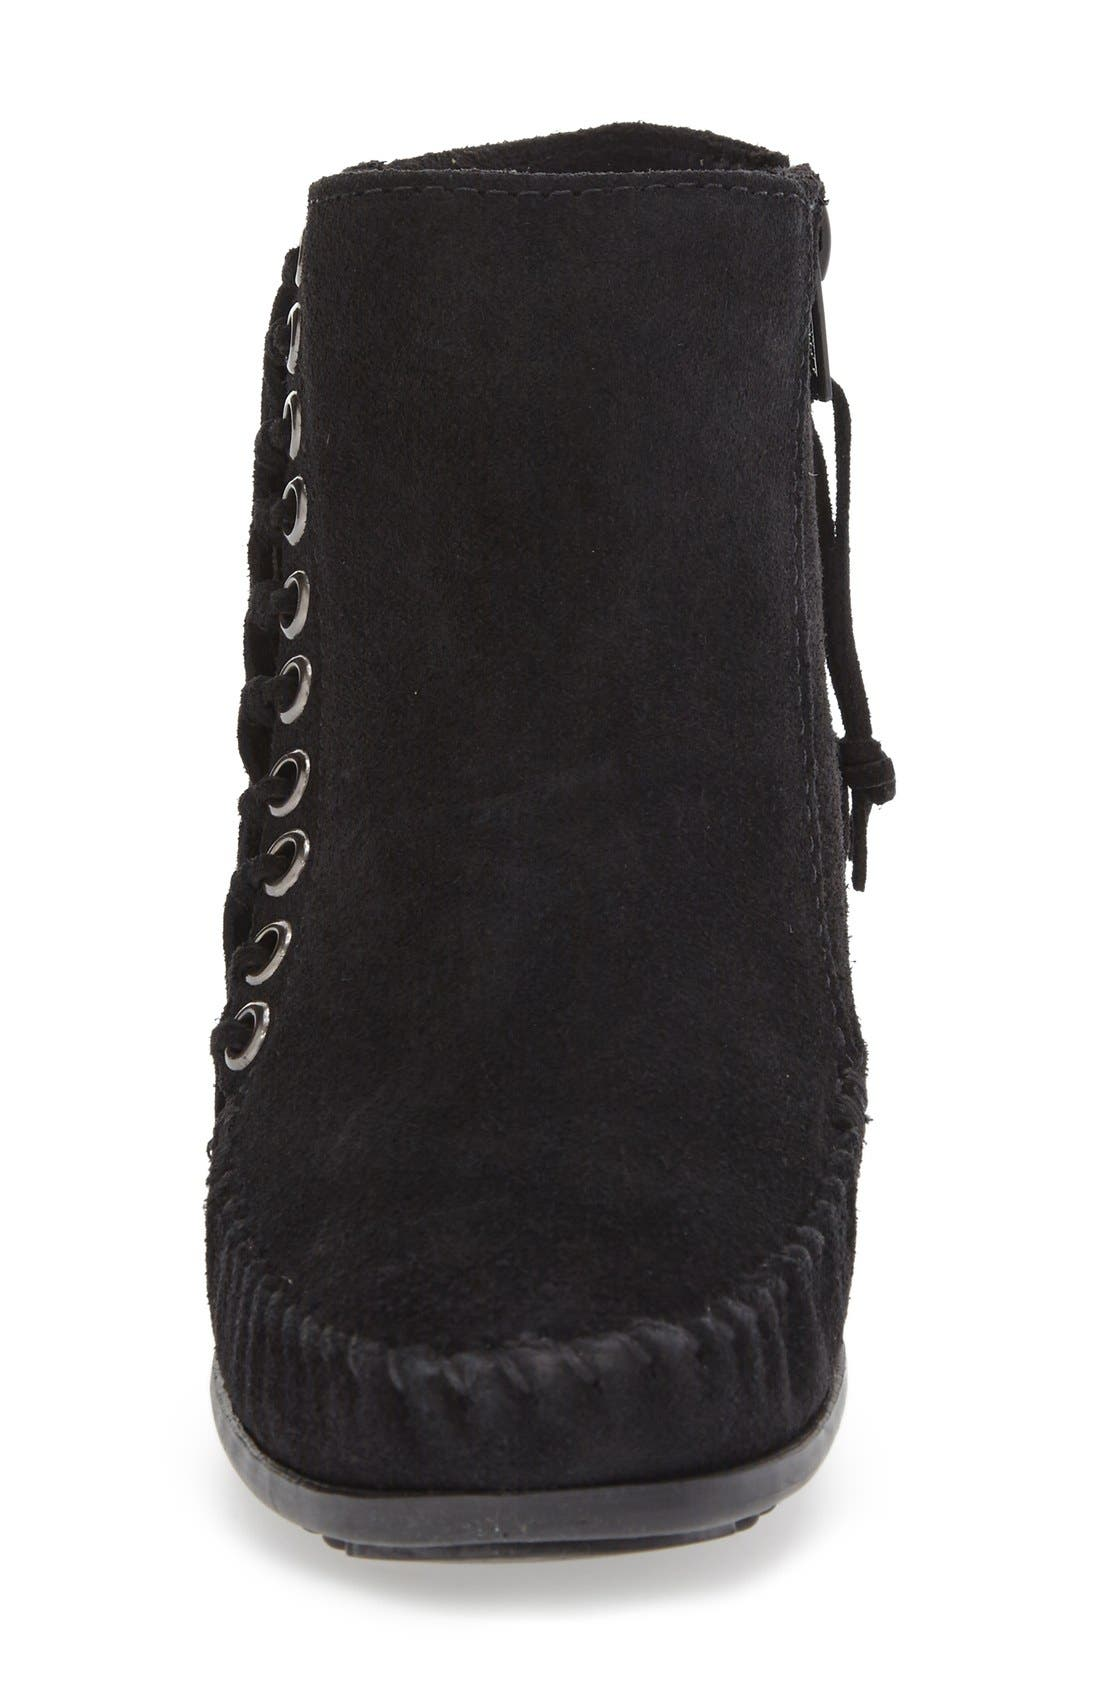 Alternate Image 3  - Minnetonka 'Willow' Fringe Bootie (Women)